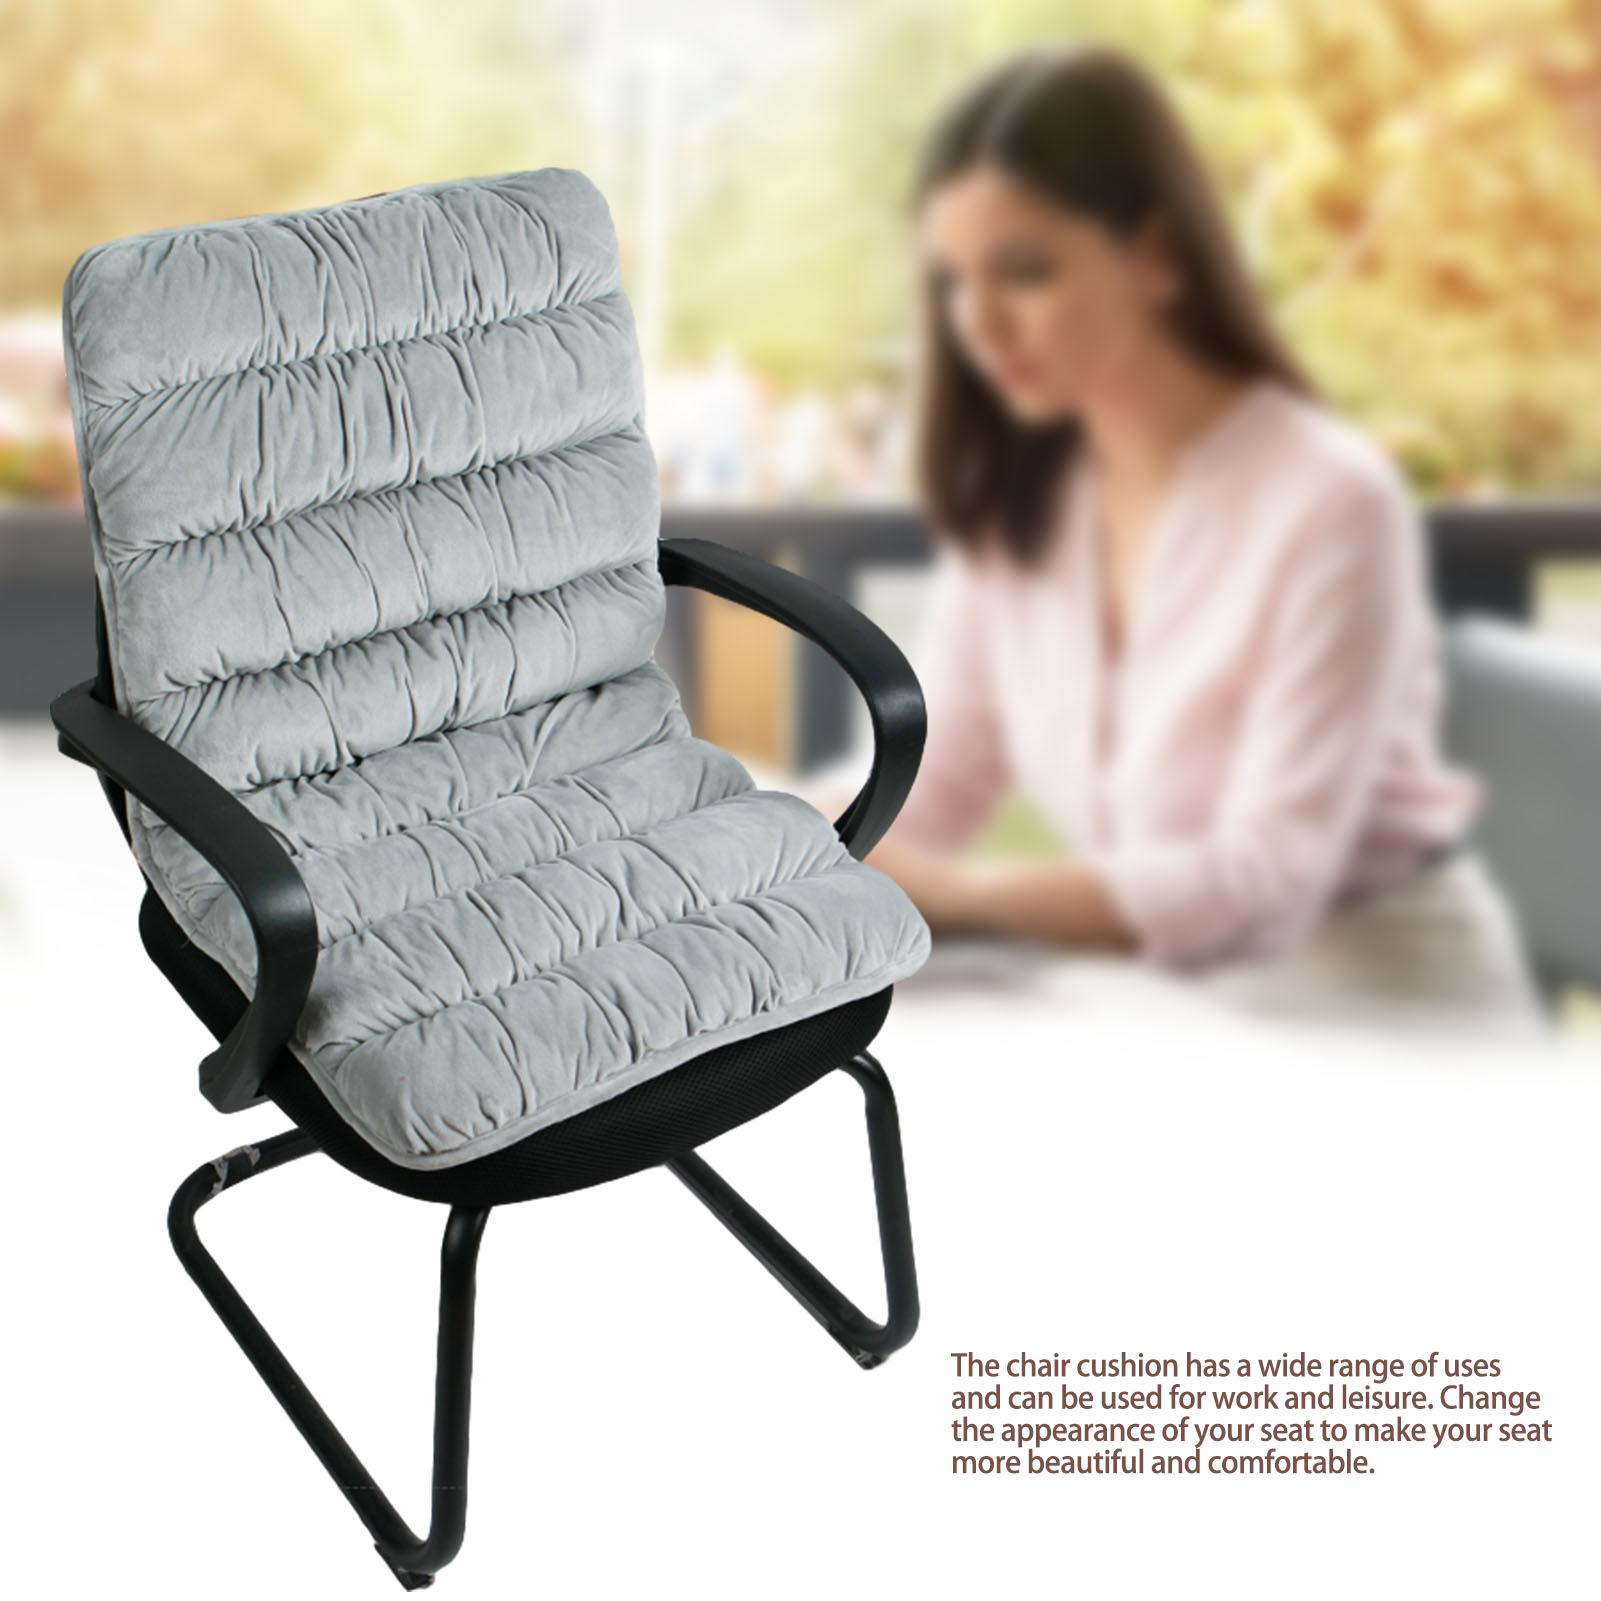 Picture of: Chair Cushion Non Slip Backrest Seat Pad For Work Leisure Walmart Com Walmart Com